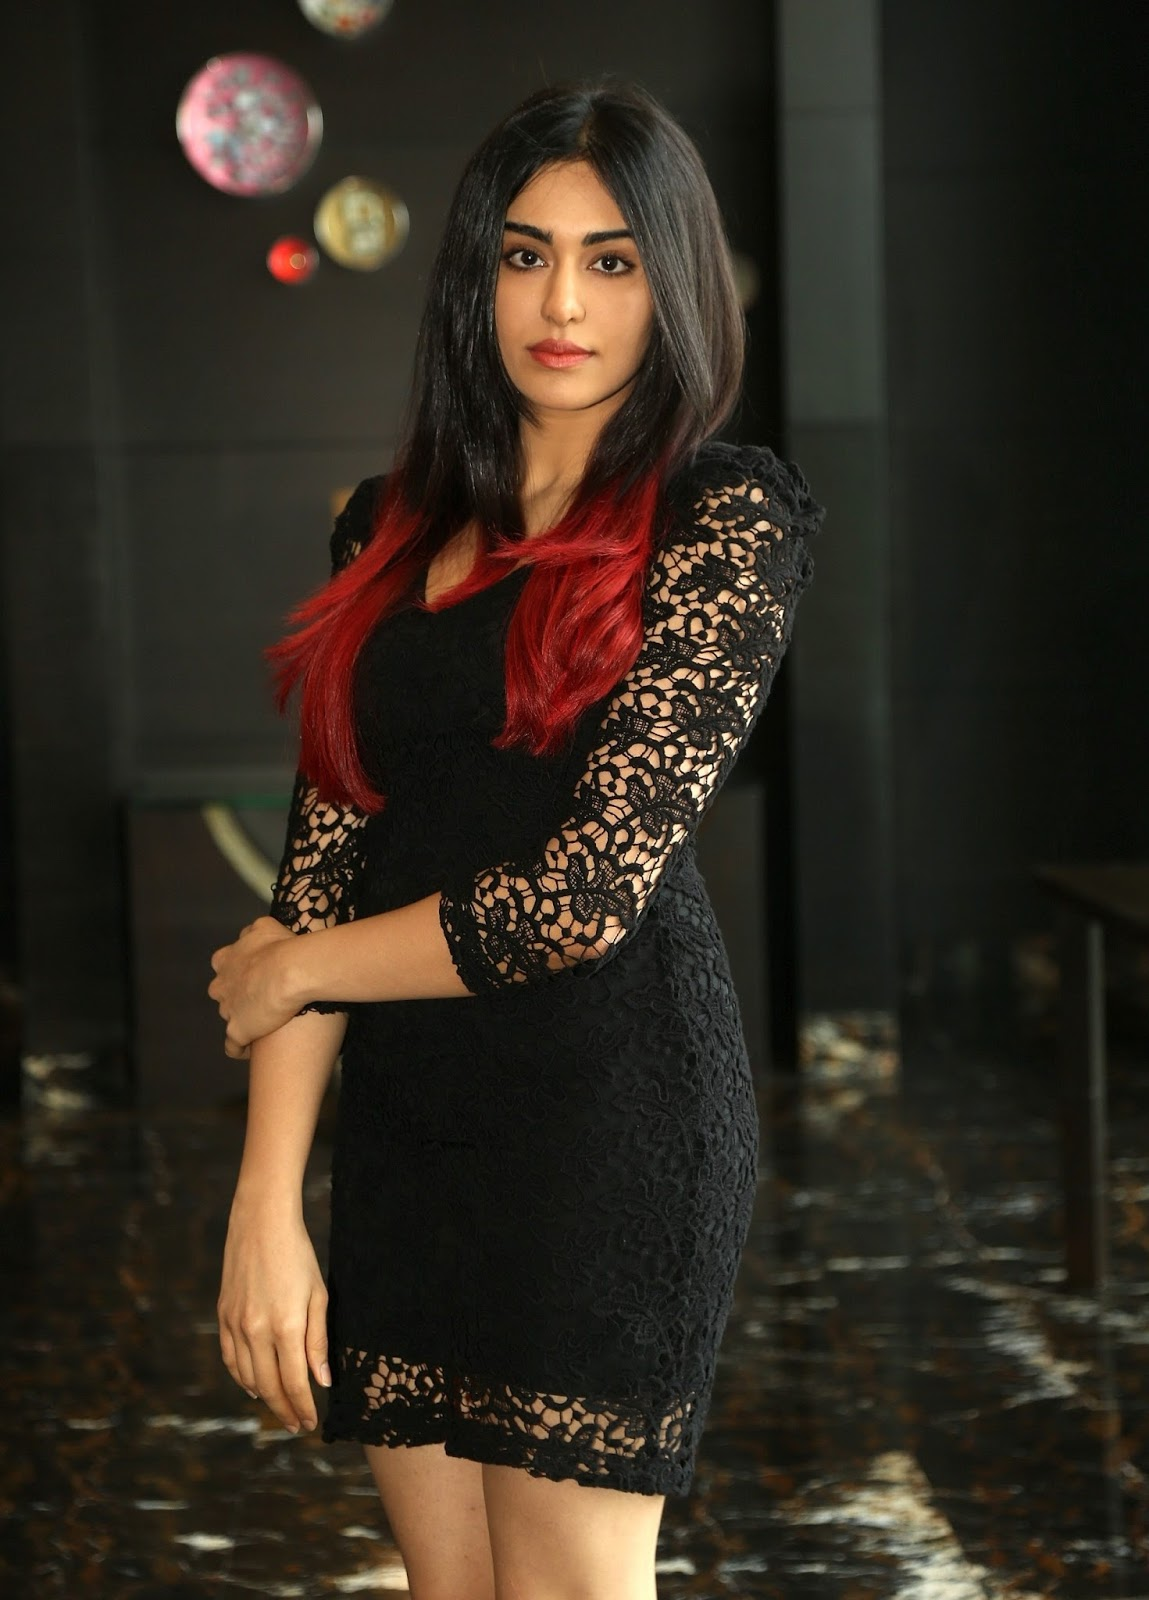 hyderabad black single women When nupur saraswat arrived at her hotel in hyderabad on saturday morning, she was told that single women travellers are not allowed to stay there.